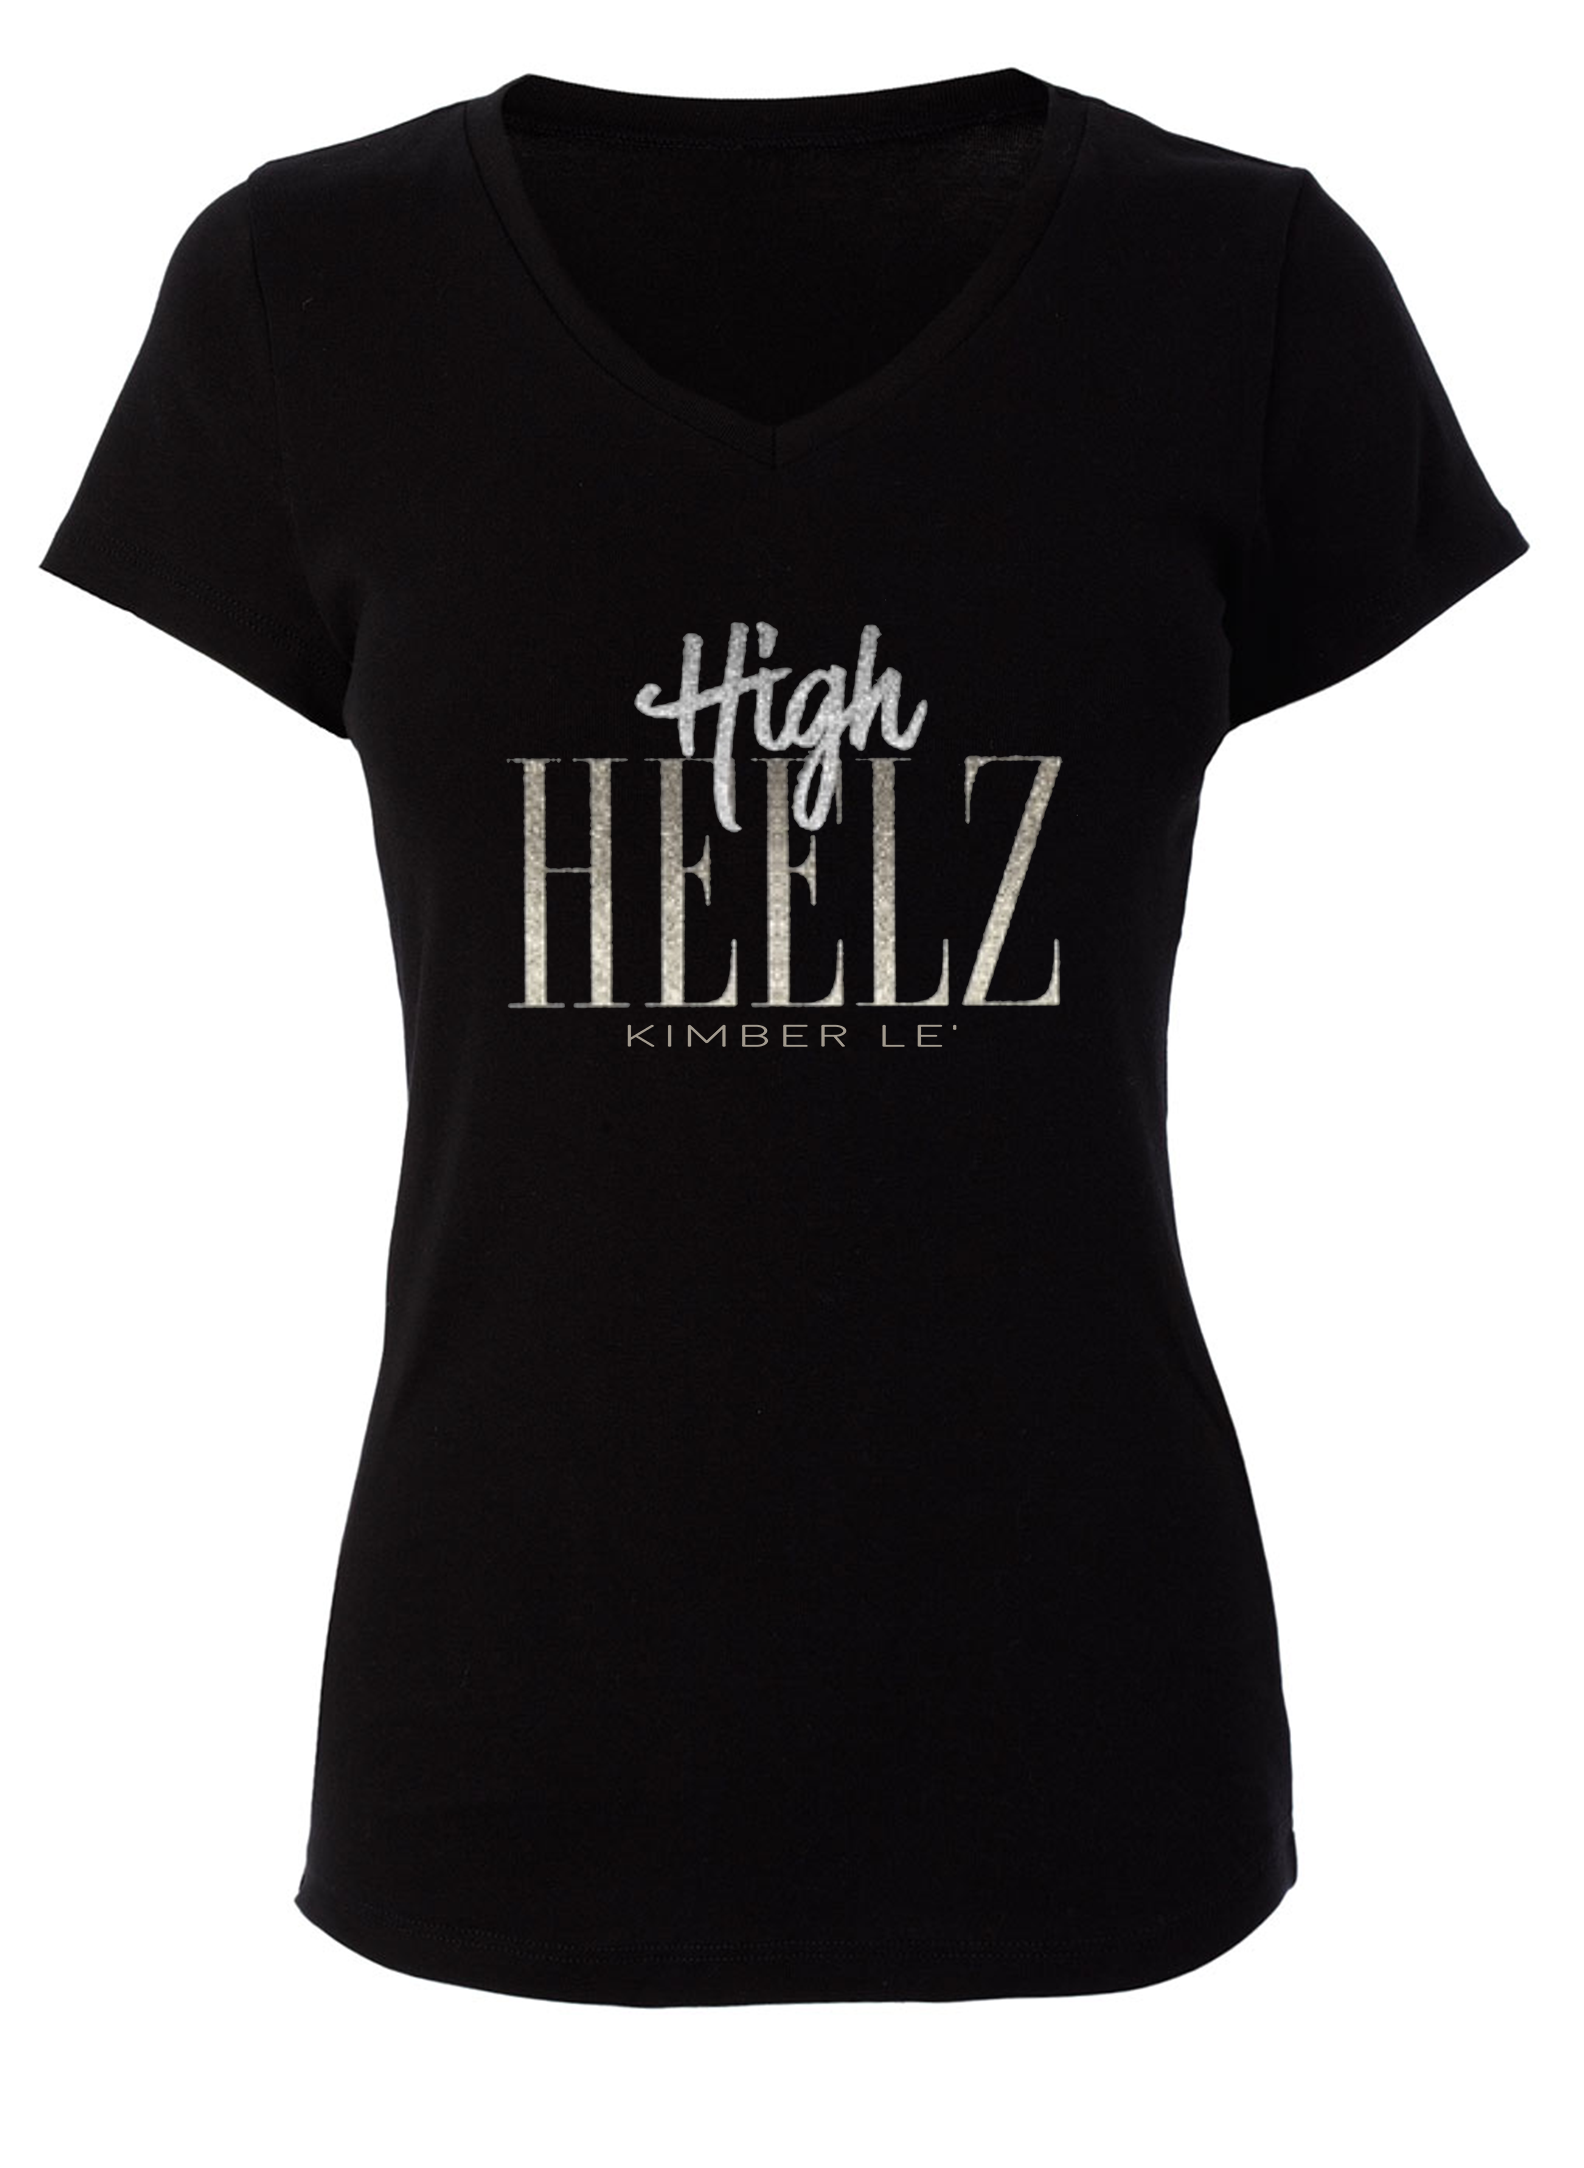 High Heelz T-Shirt